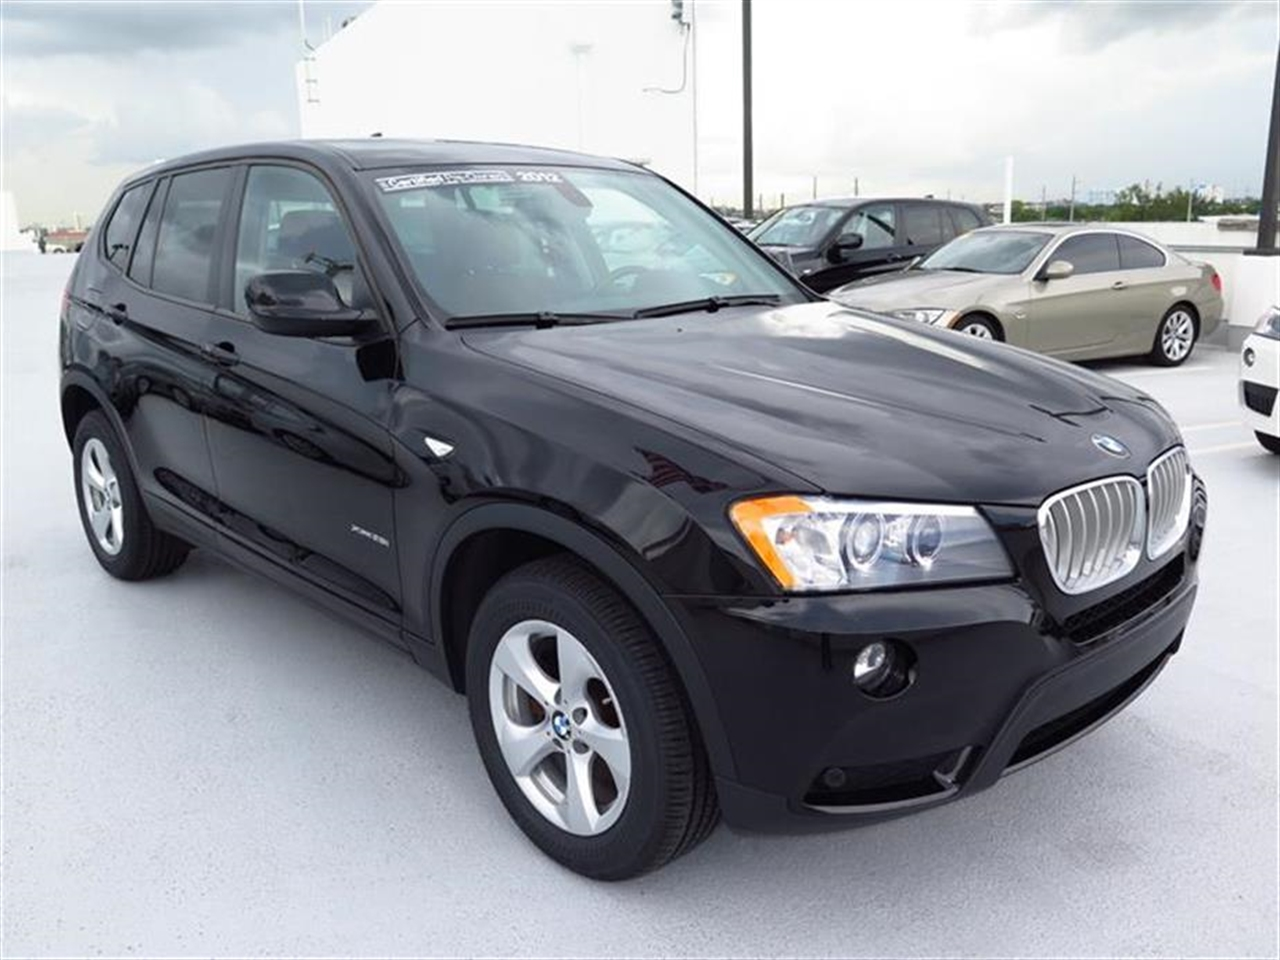 2012 BMW X3 AWD 4dr 28i 31619 miles 3-spoke leather-wrapped multi-function sport steering wheel wi